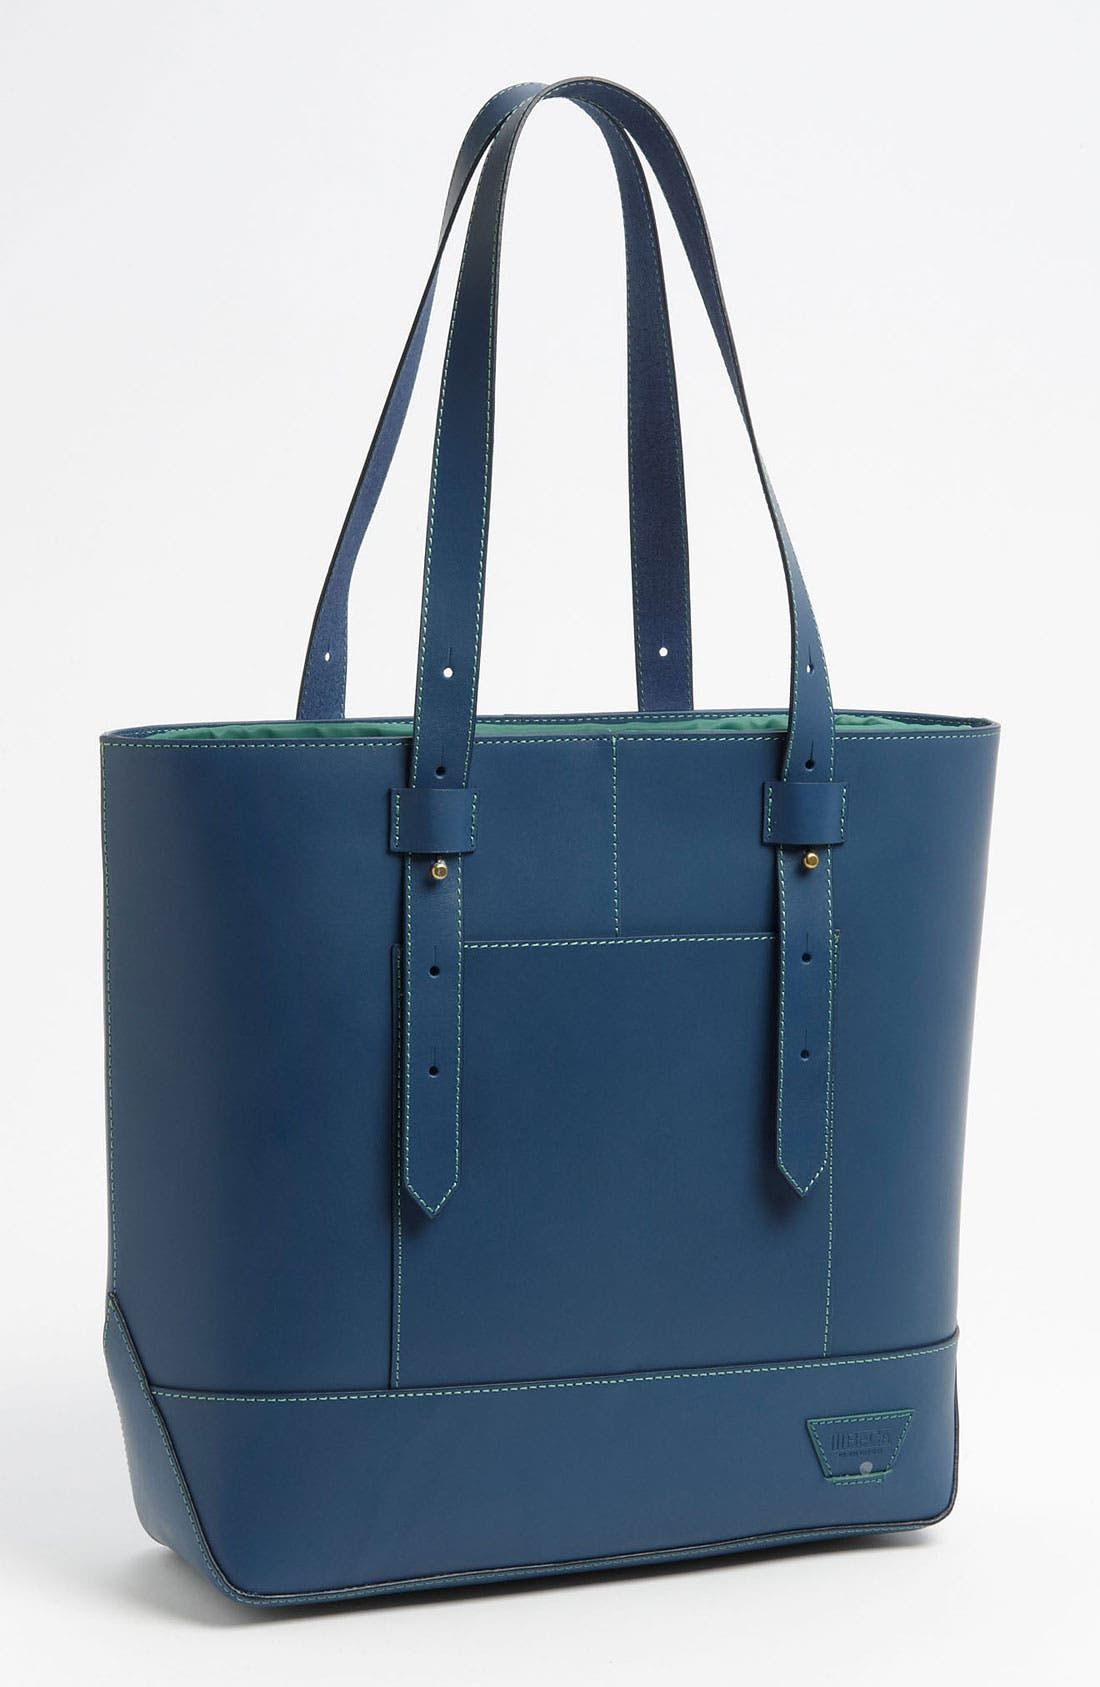 Alternate Image 1 Selected - IIIBeCa By Joy Gryson 'Reade Street' Tote